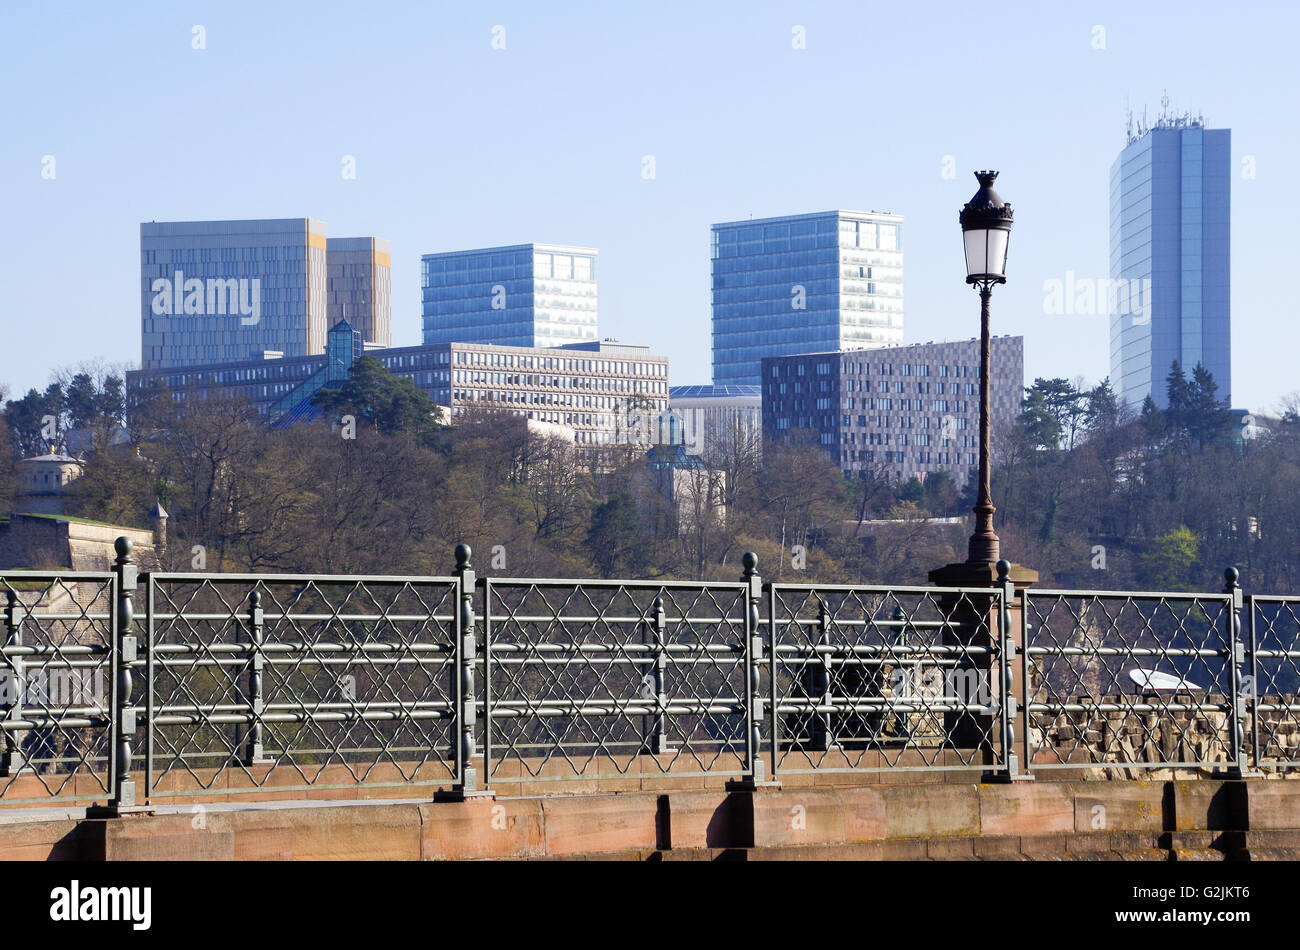 Luxembourg city - view of the Castle Bridge and European institutions on the Kirchberg plateau - Stock Image